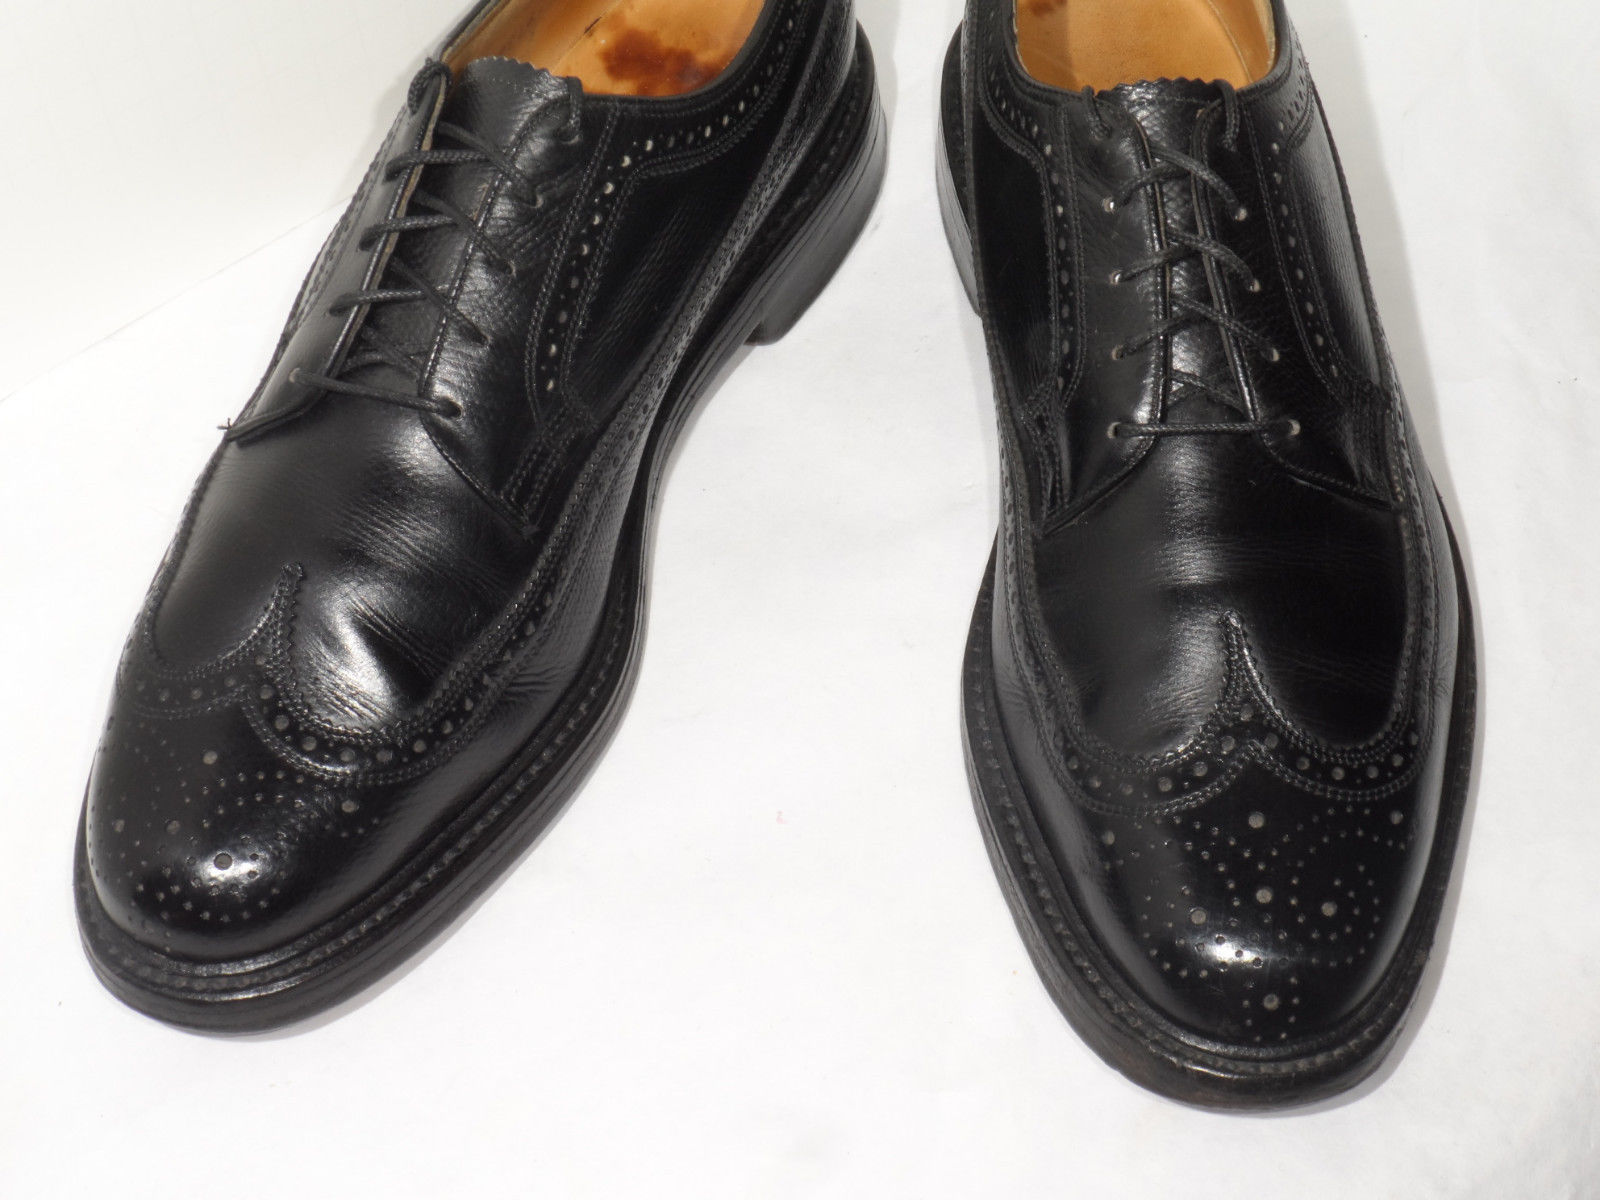 Florsheim Imperial Leather Shoes | Classic Vintage Apparel